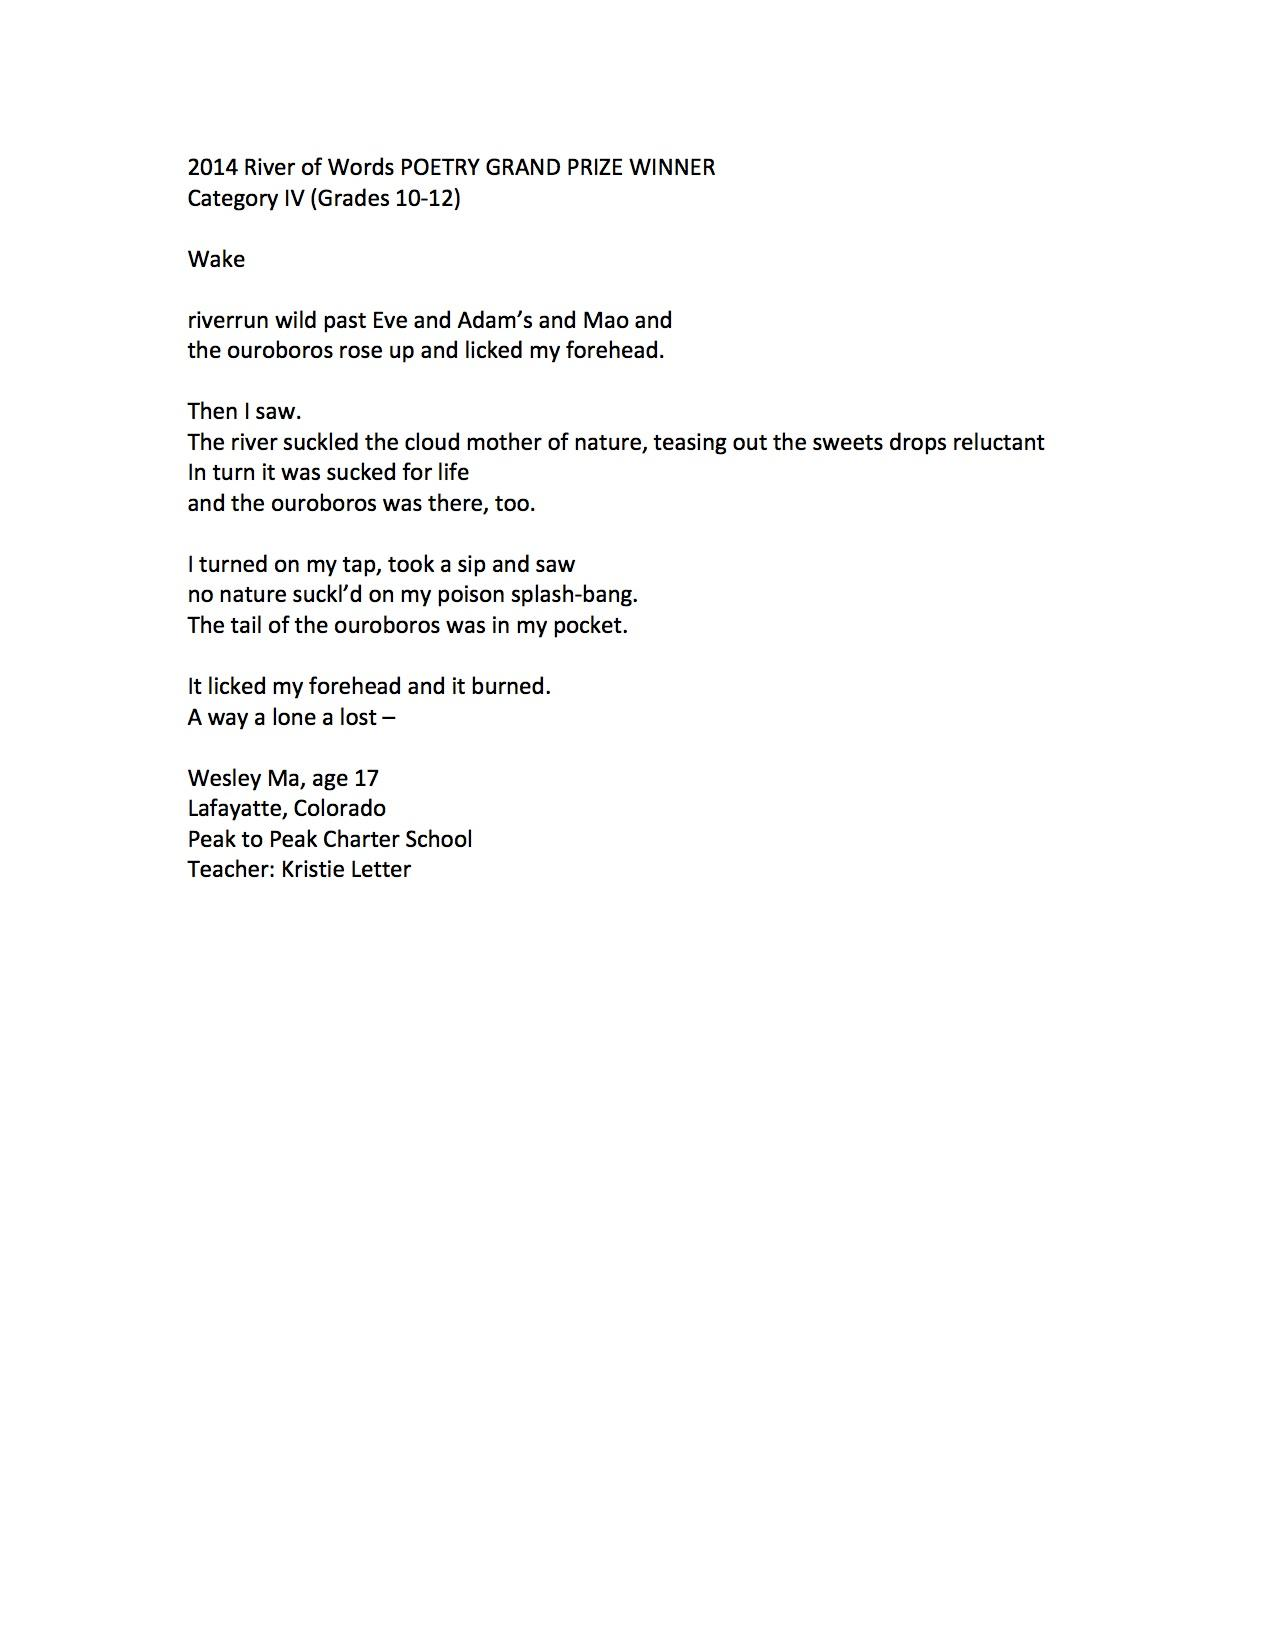 2015 Poetry to come These are the 2014 Poetry Finalists and – Prize Winner Letter Template